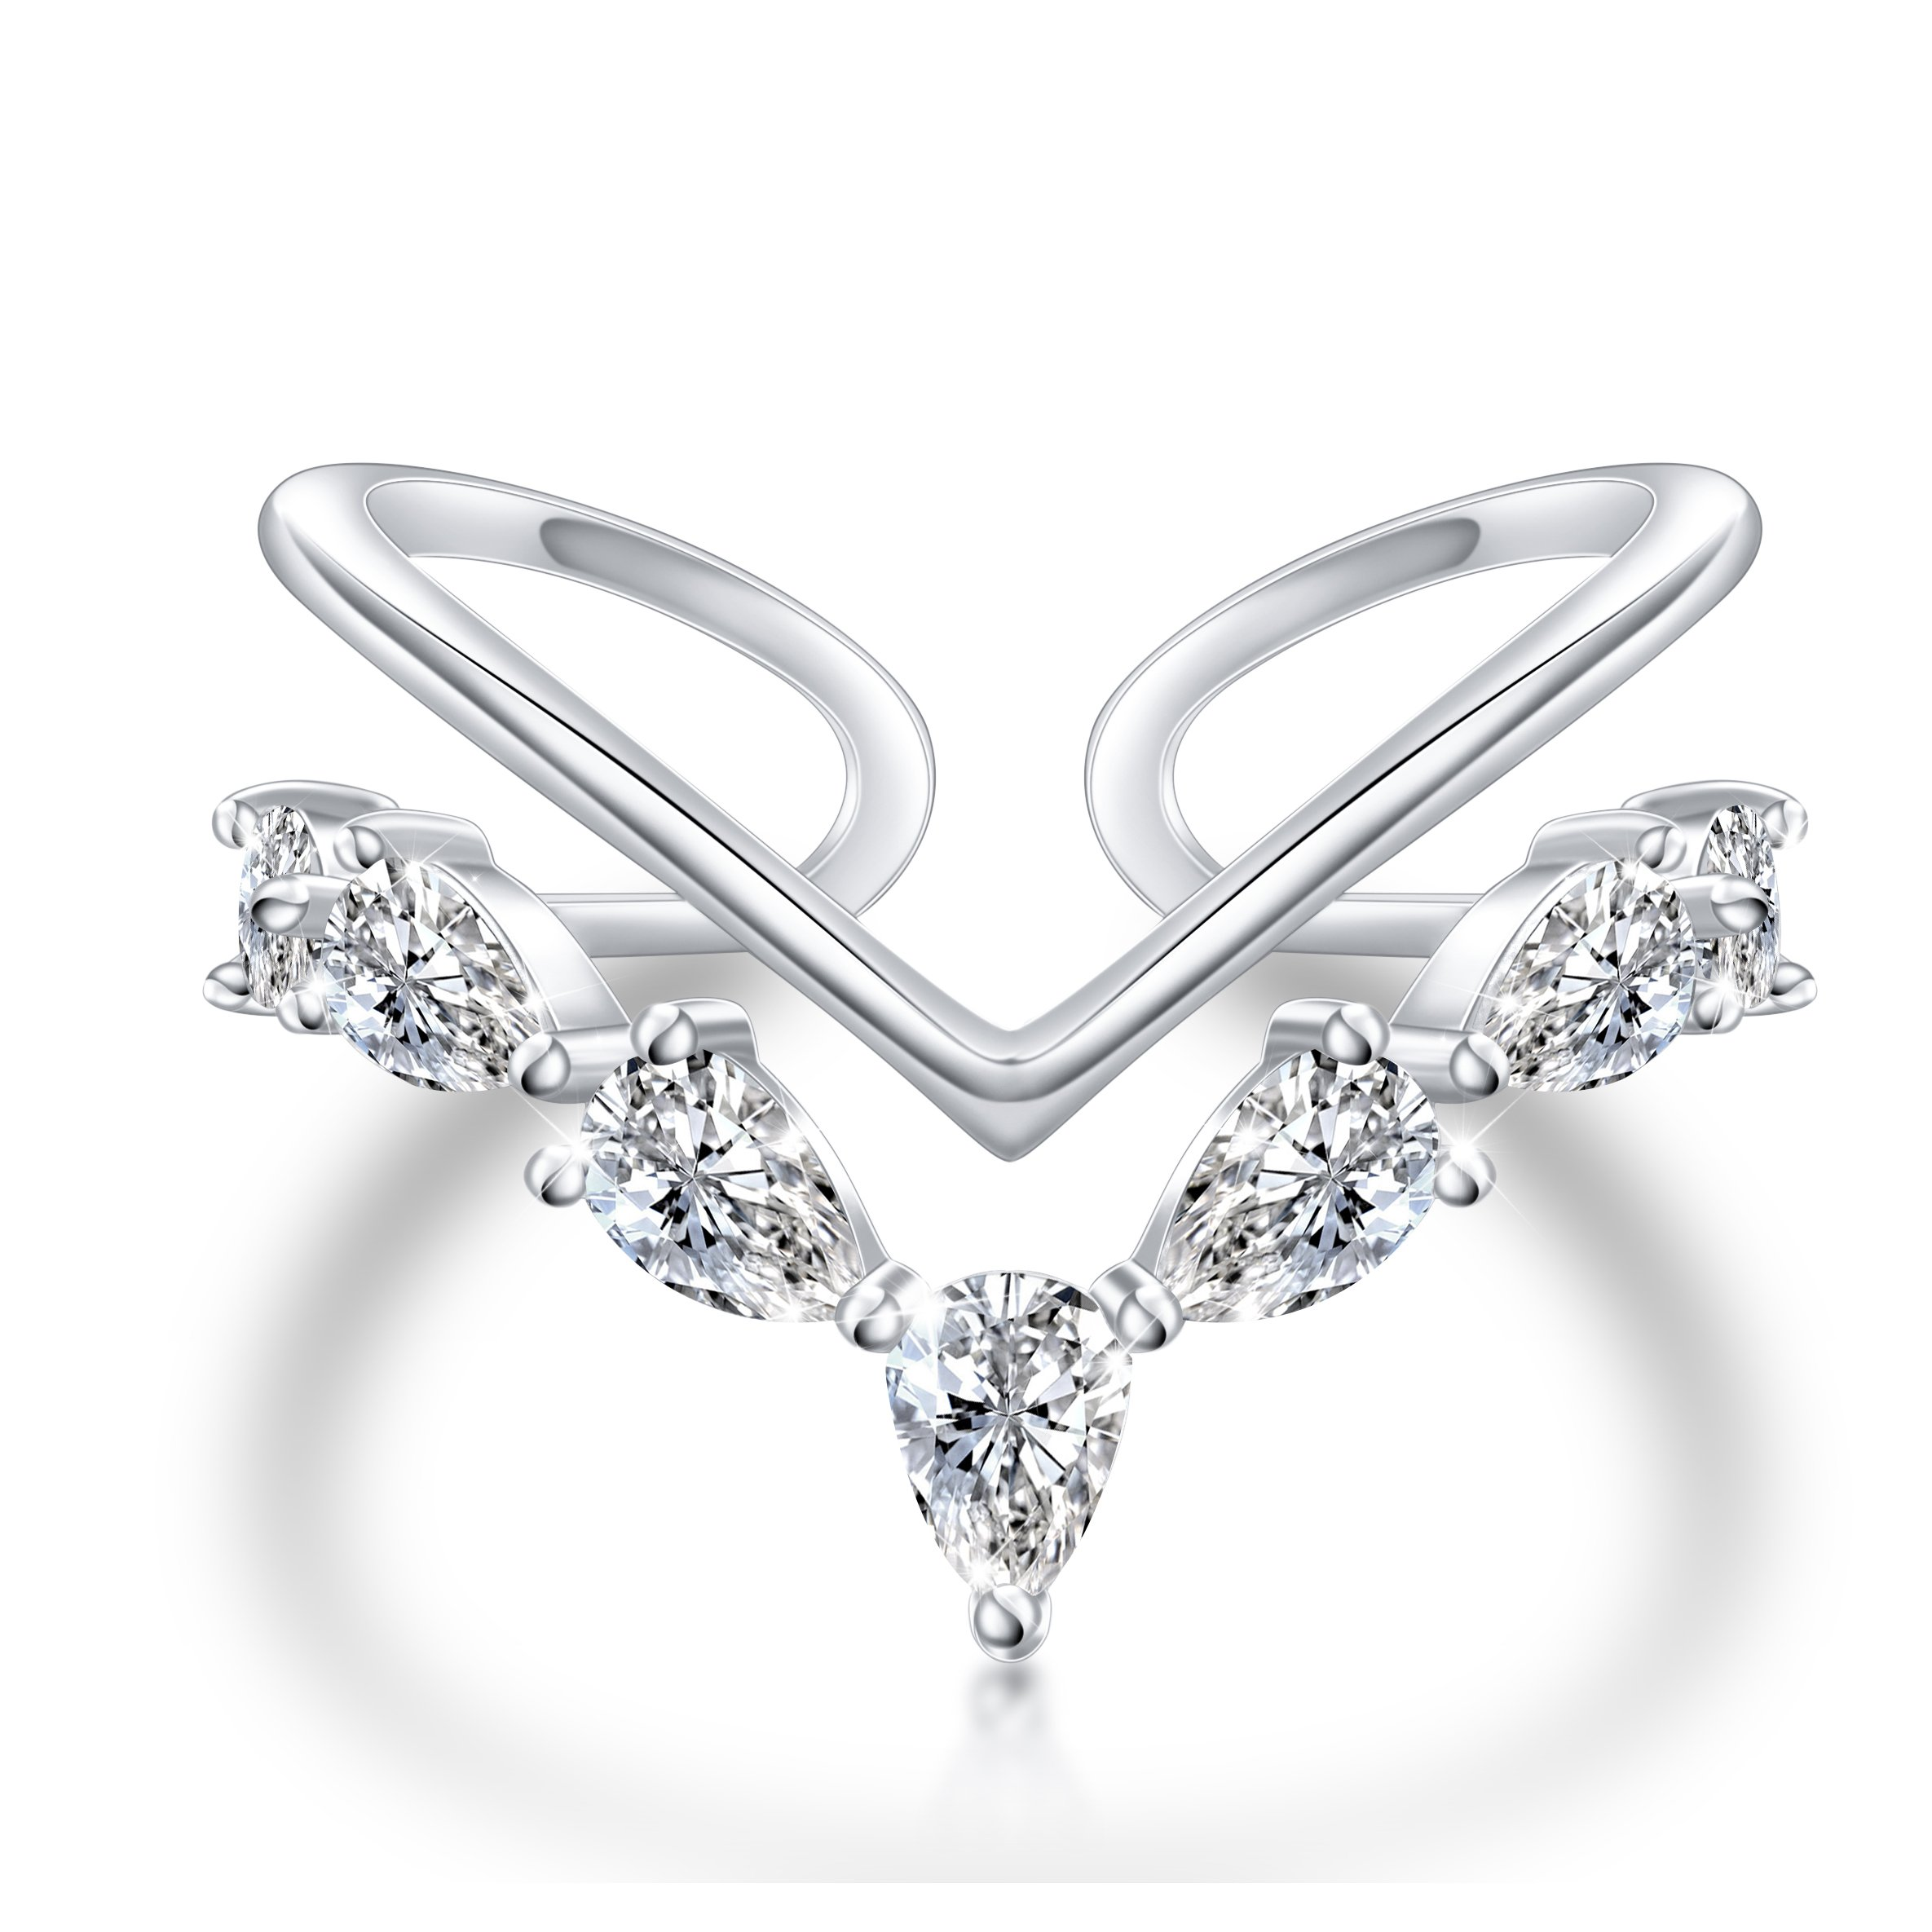 Shaoan Jewelry Sterling Silver CZ V ring Open Adjustable Wrap Heart Princess Ring for Women Girl, Size 7 (White Gold)